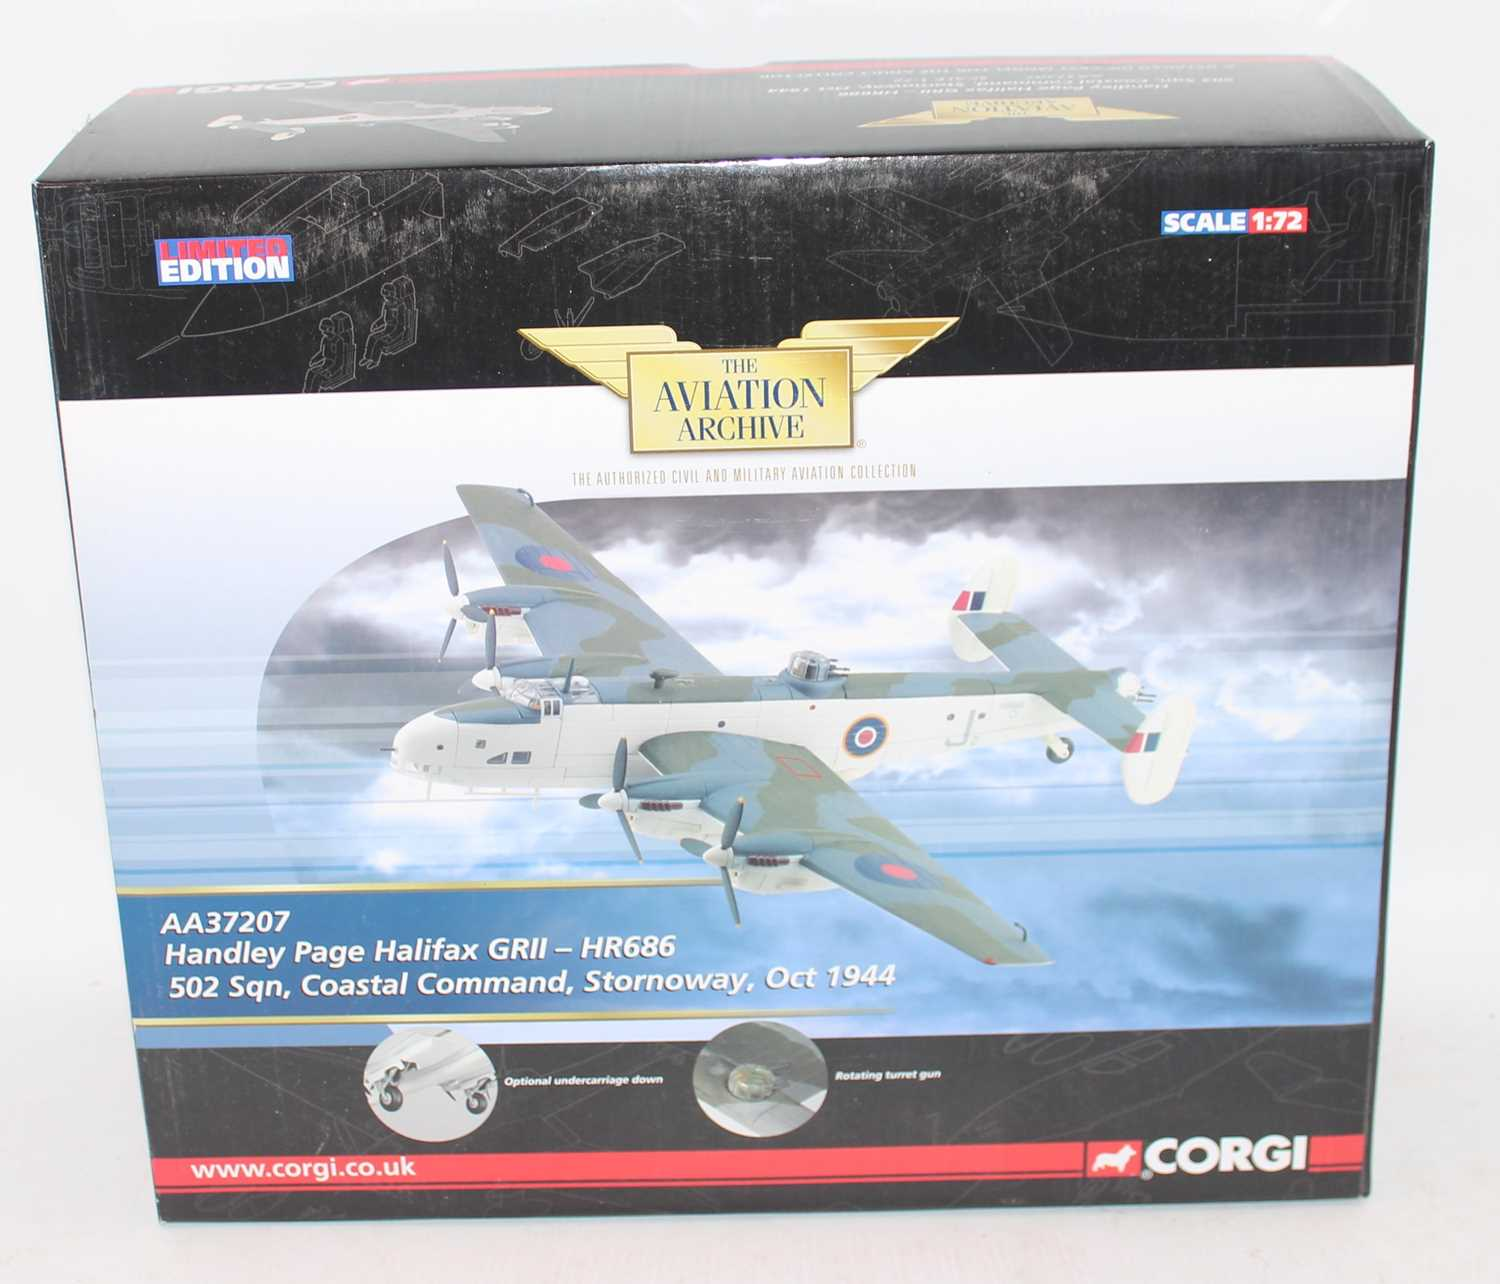 A Corgi Aviation Archive model No. AA37207 1/72 scale limited edition model of a Handley Page